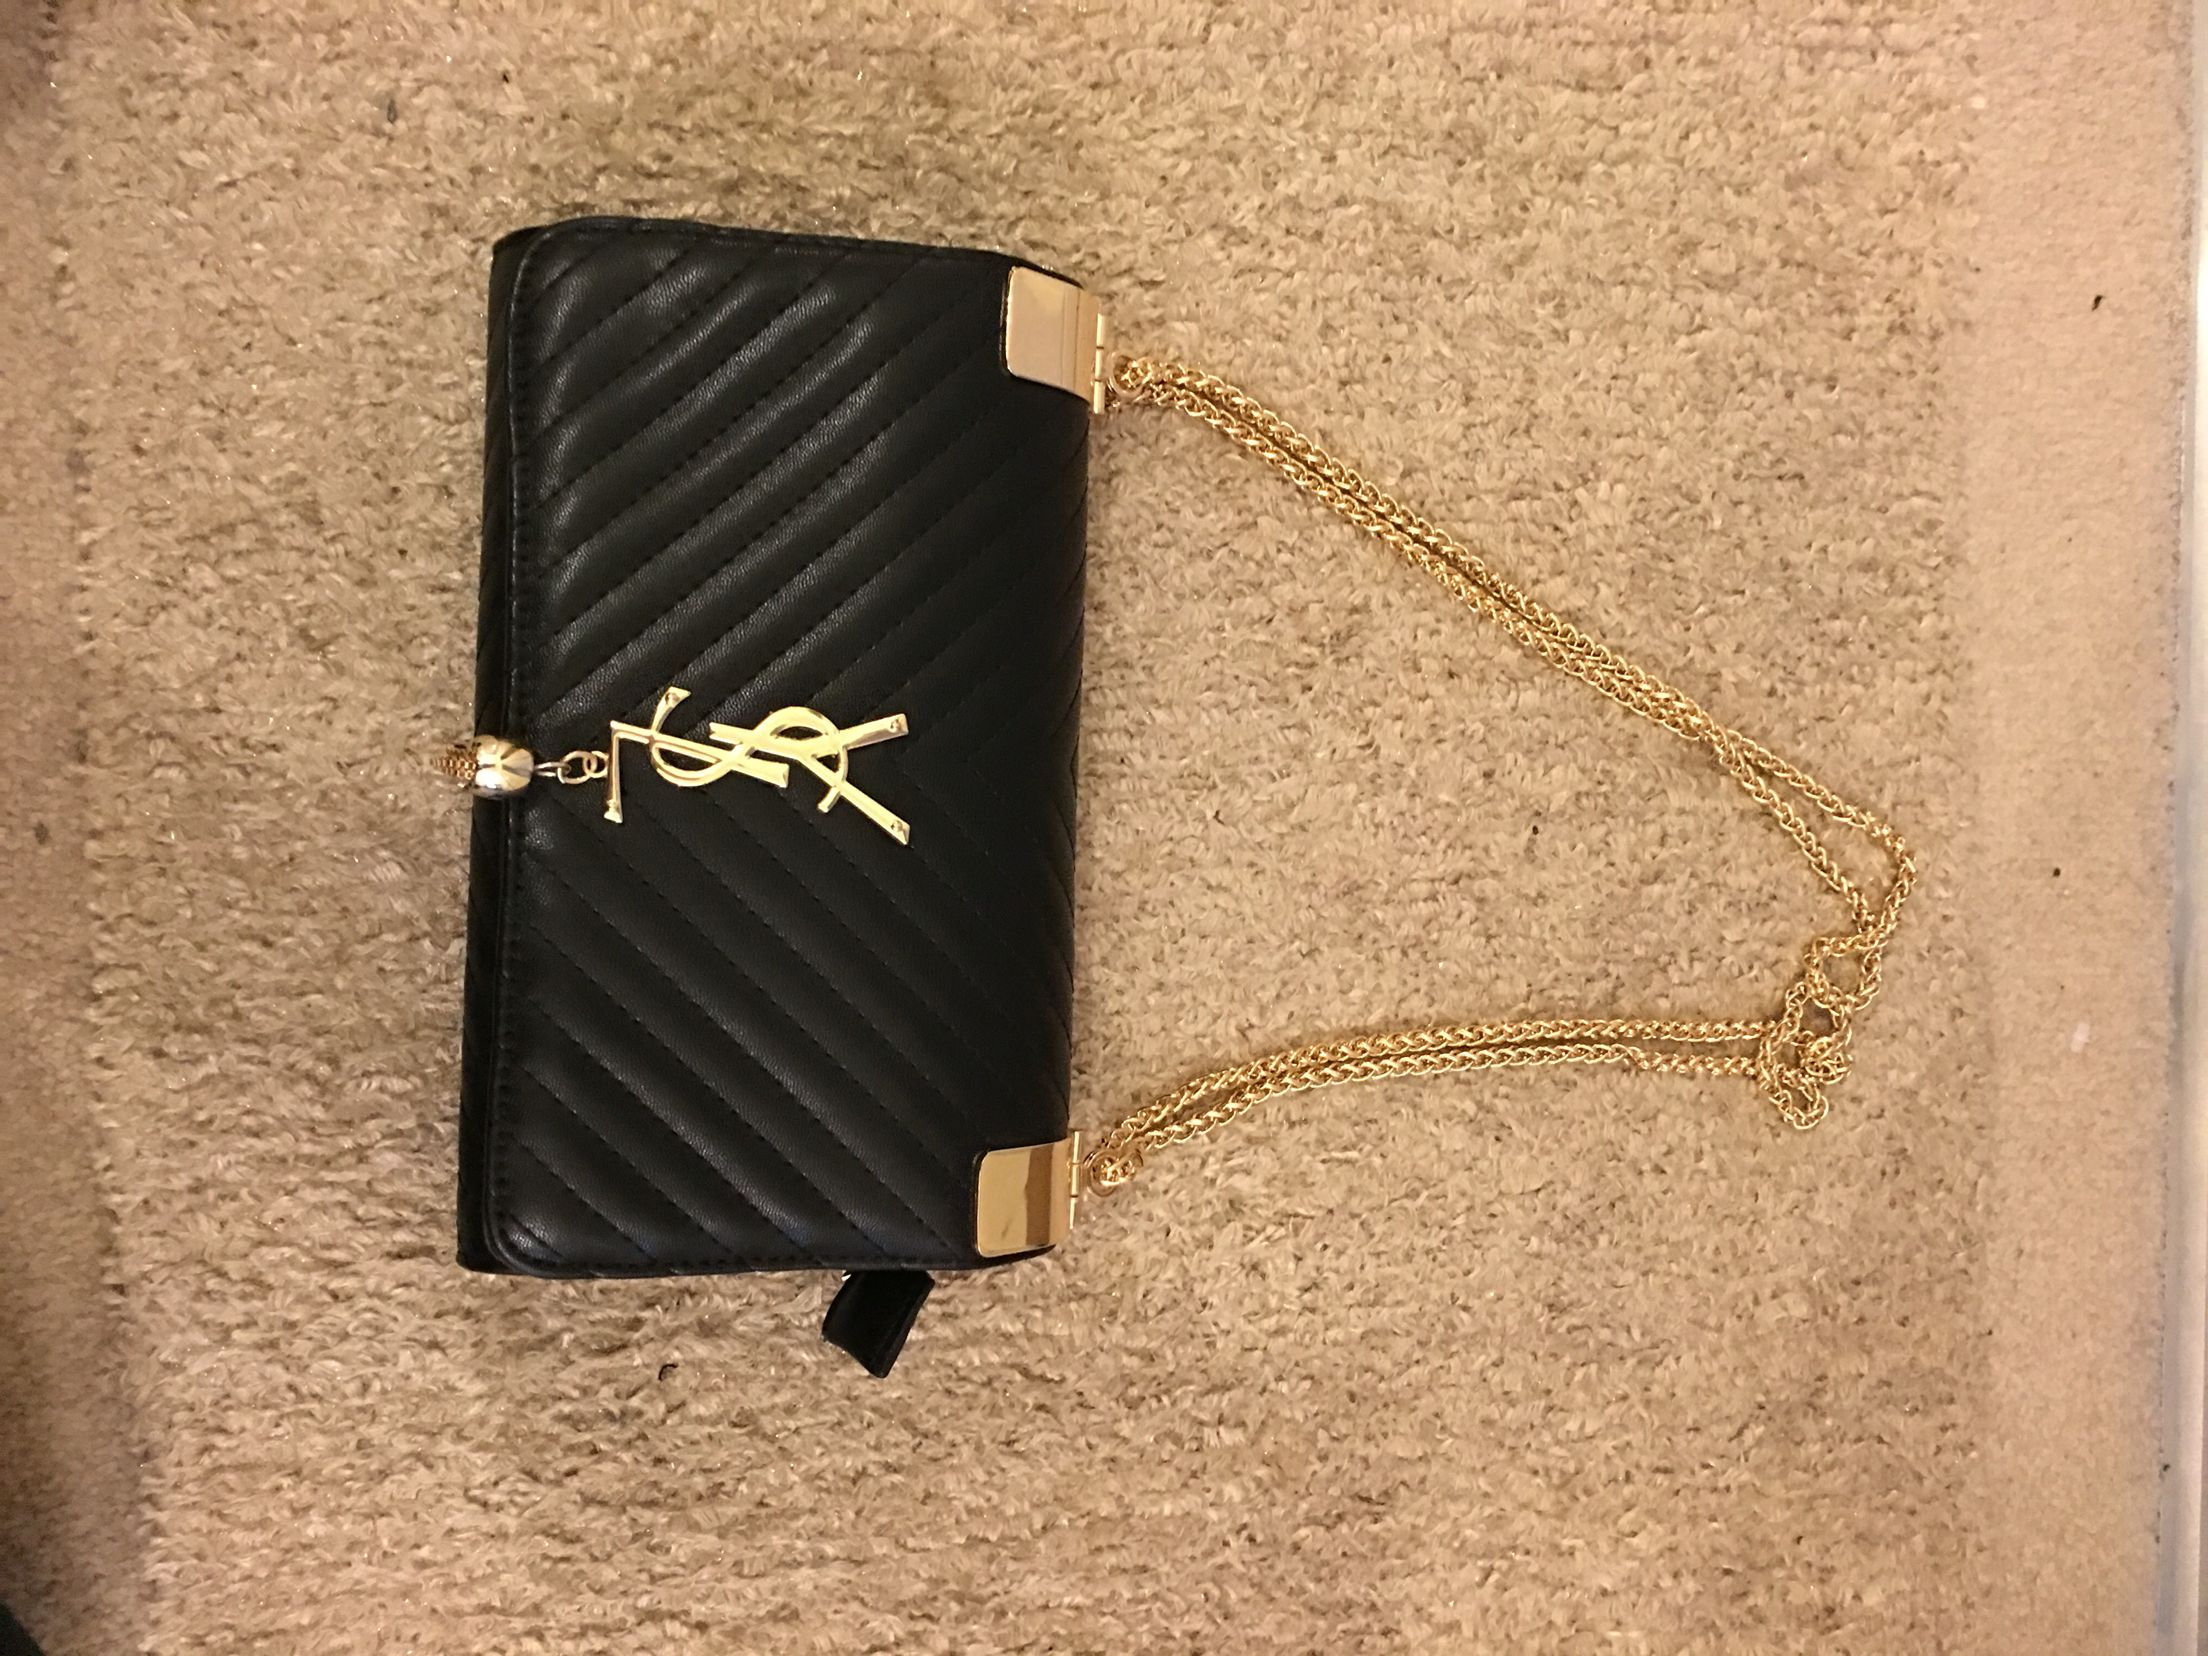 Black Ysl Side Bag For Bags Luxury Branding